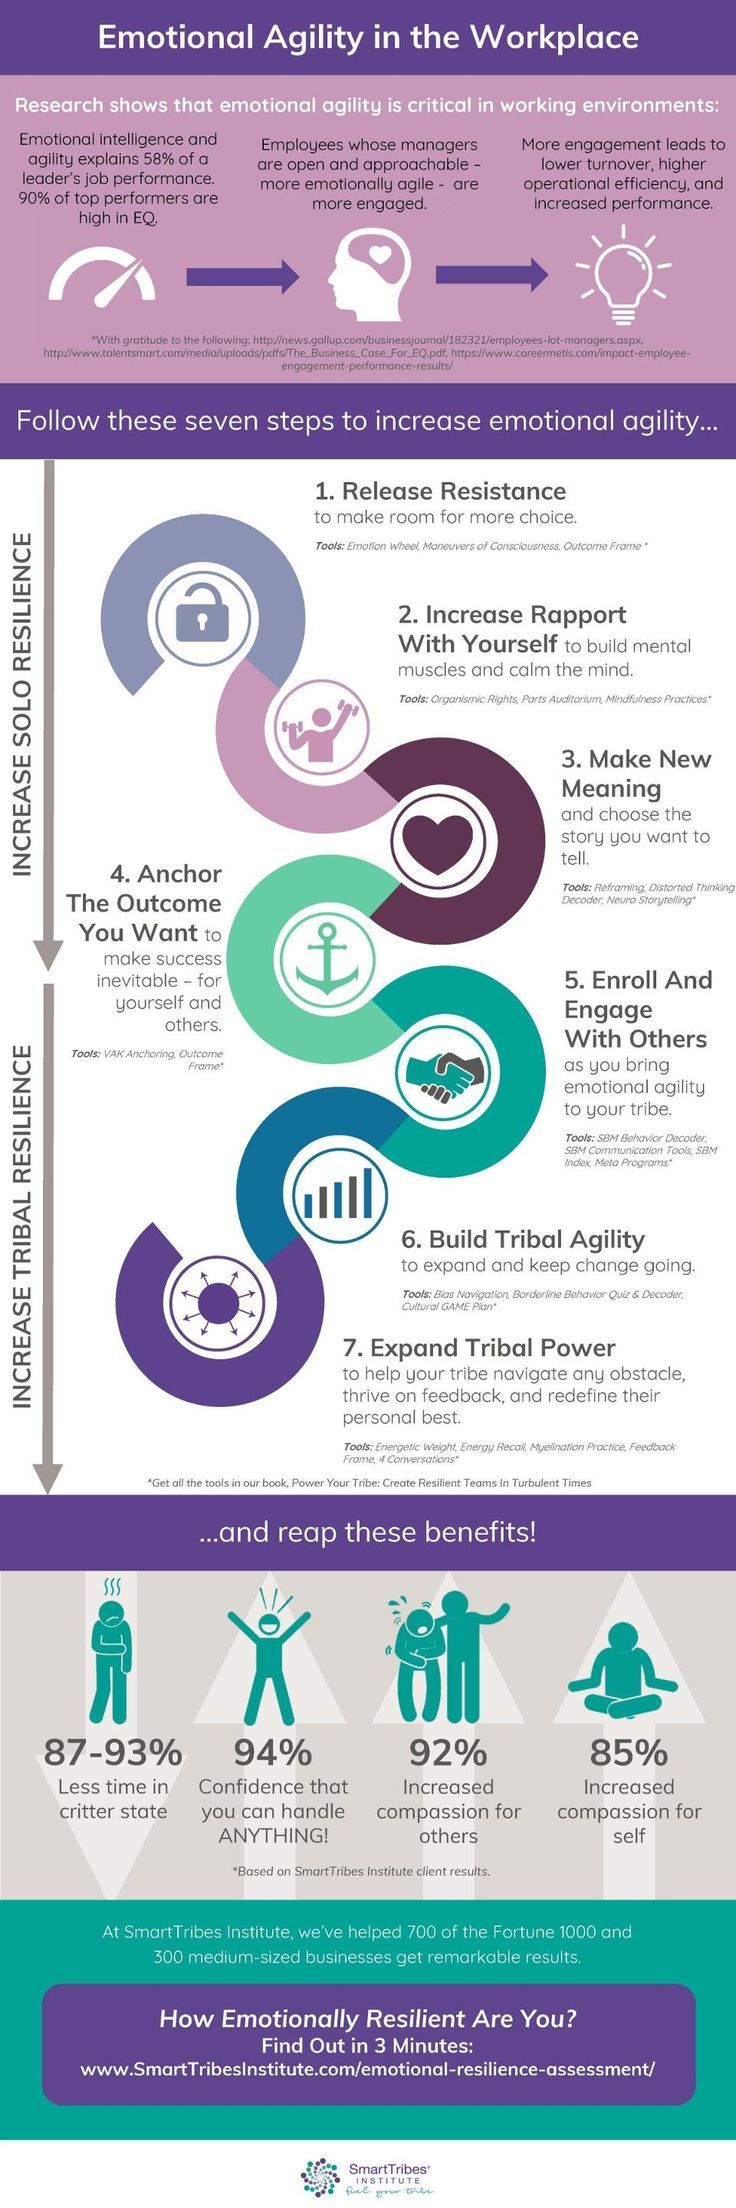 Are You Emotionally Agile? Find Out Now [Infographic